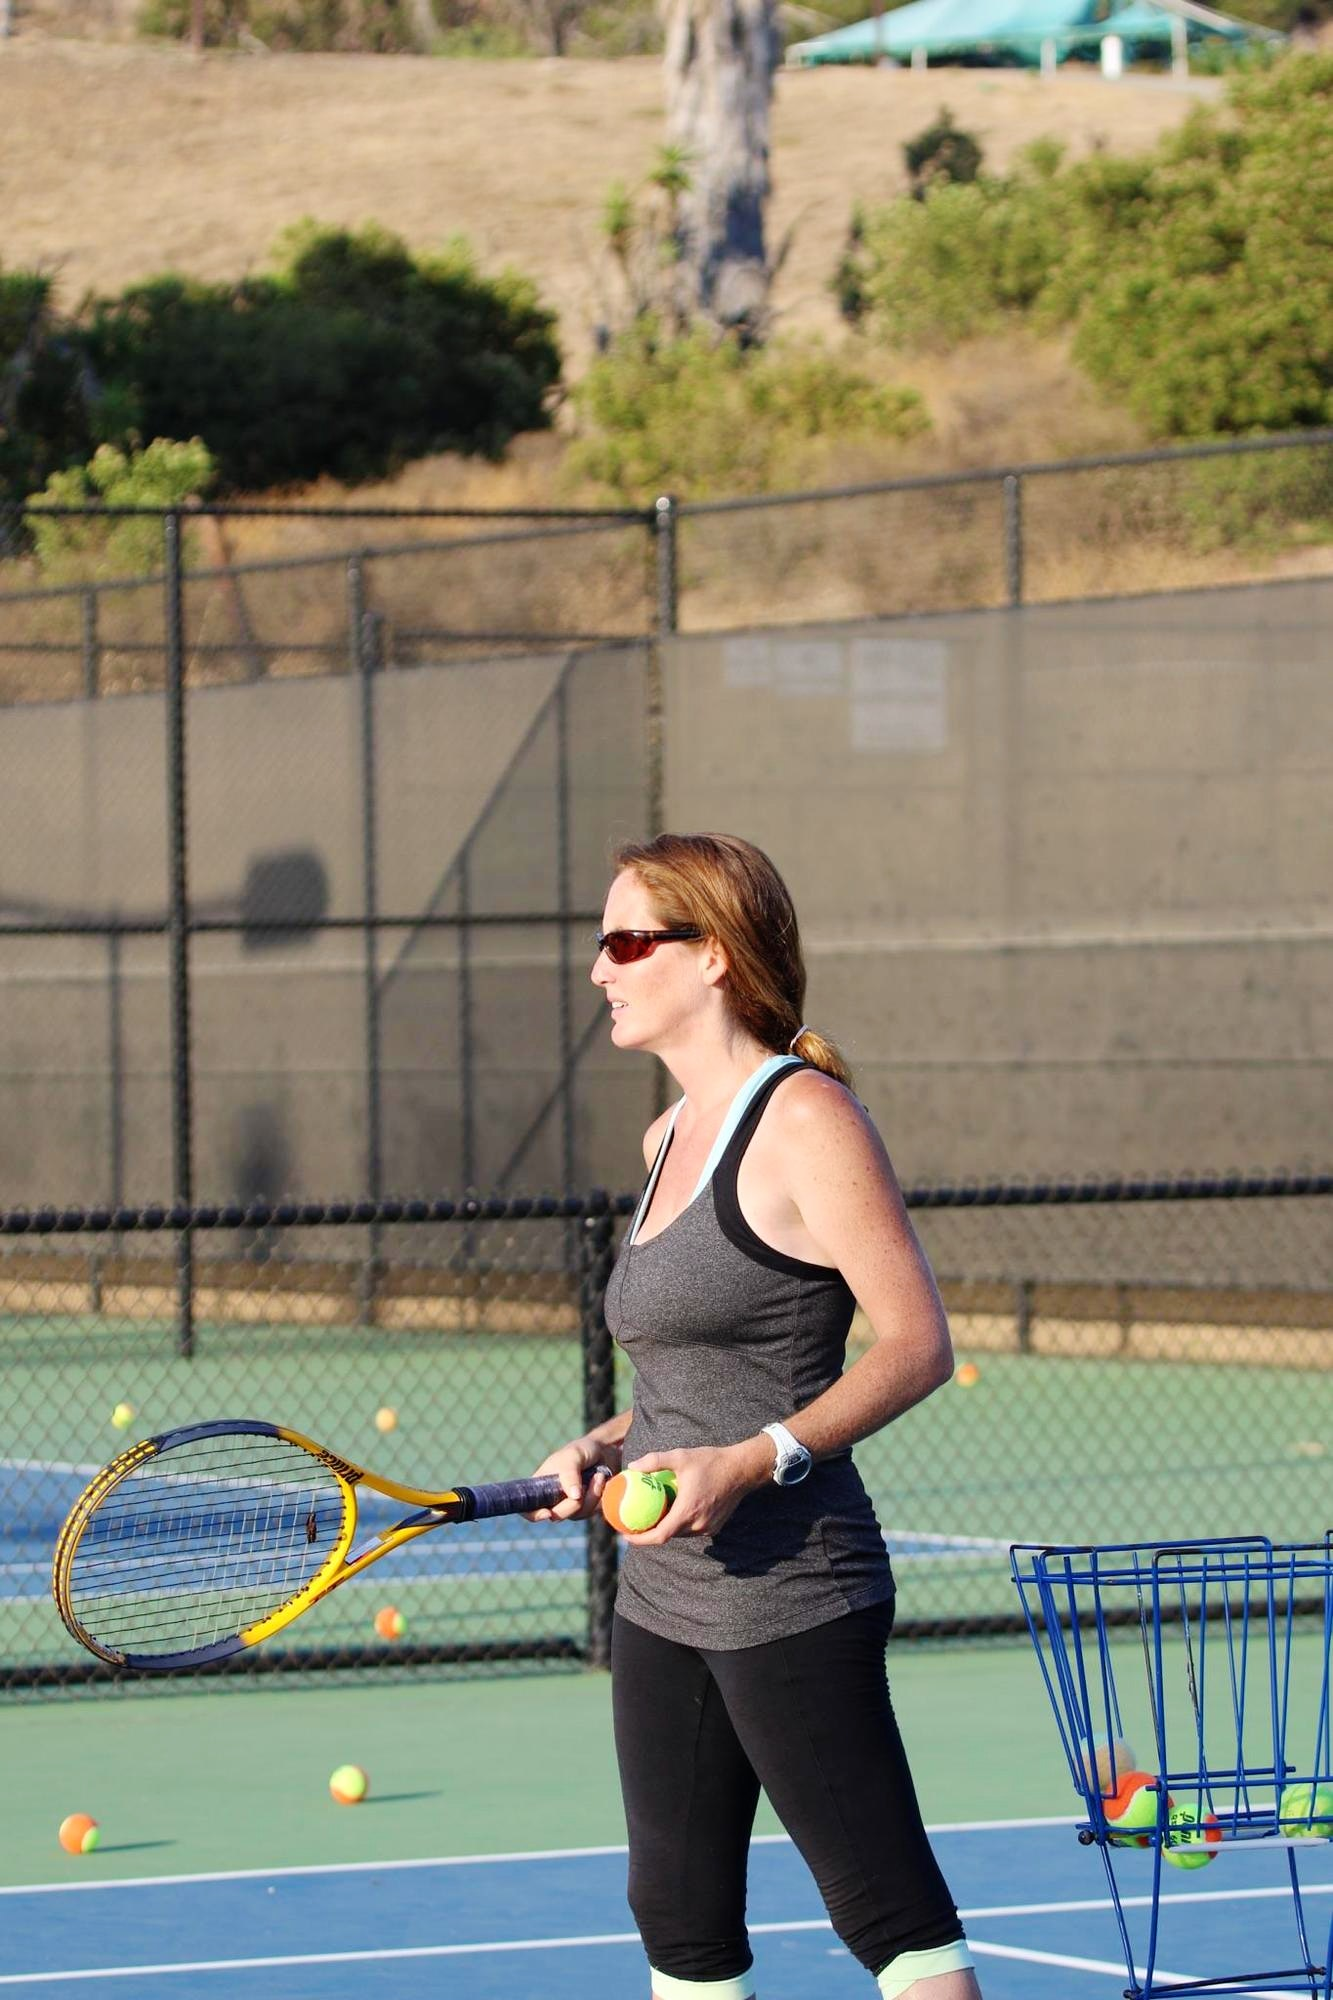 Margarita teaches tennis lessons in Costa Mesa, CA